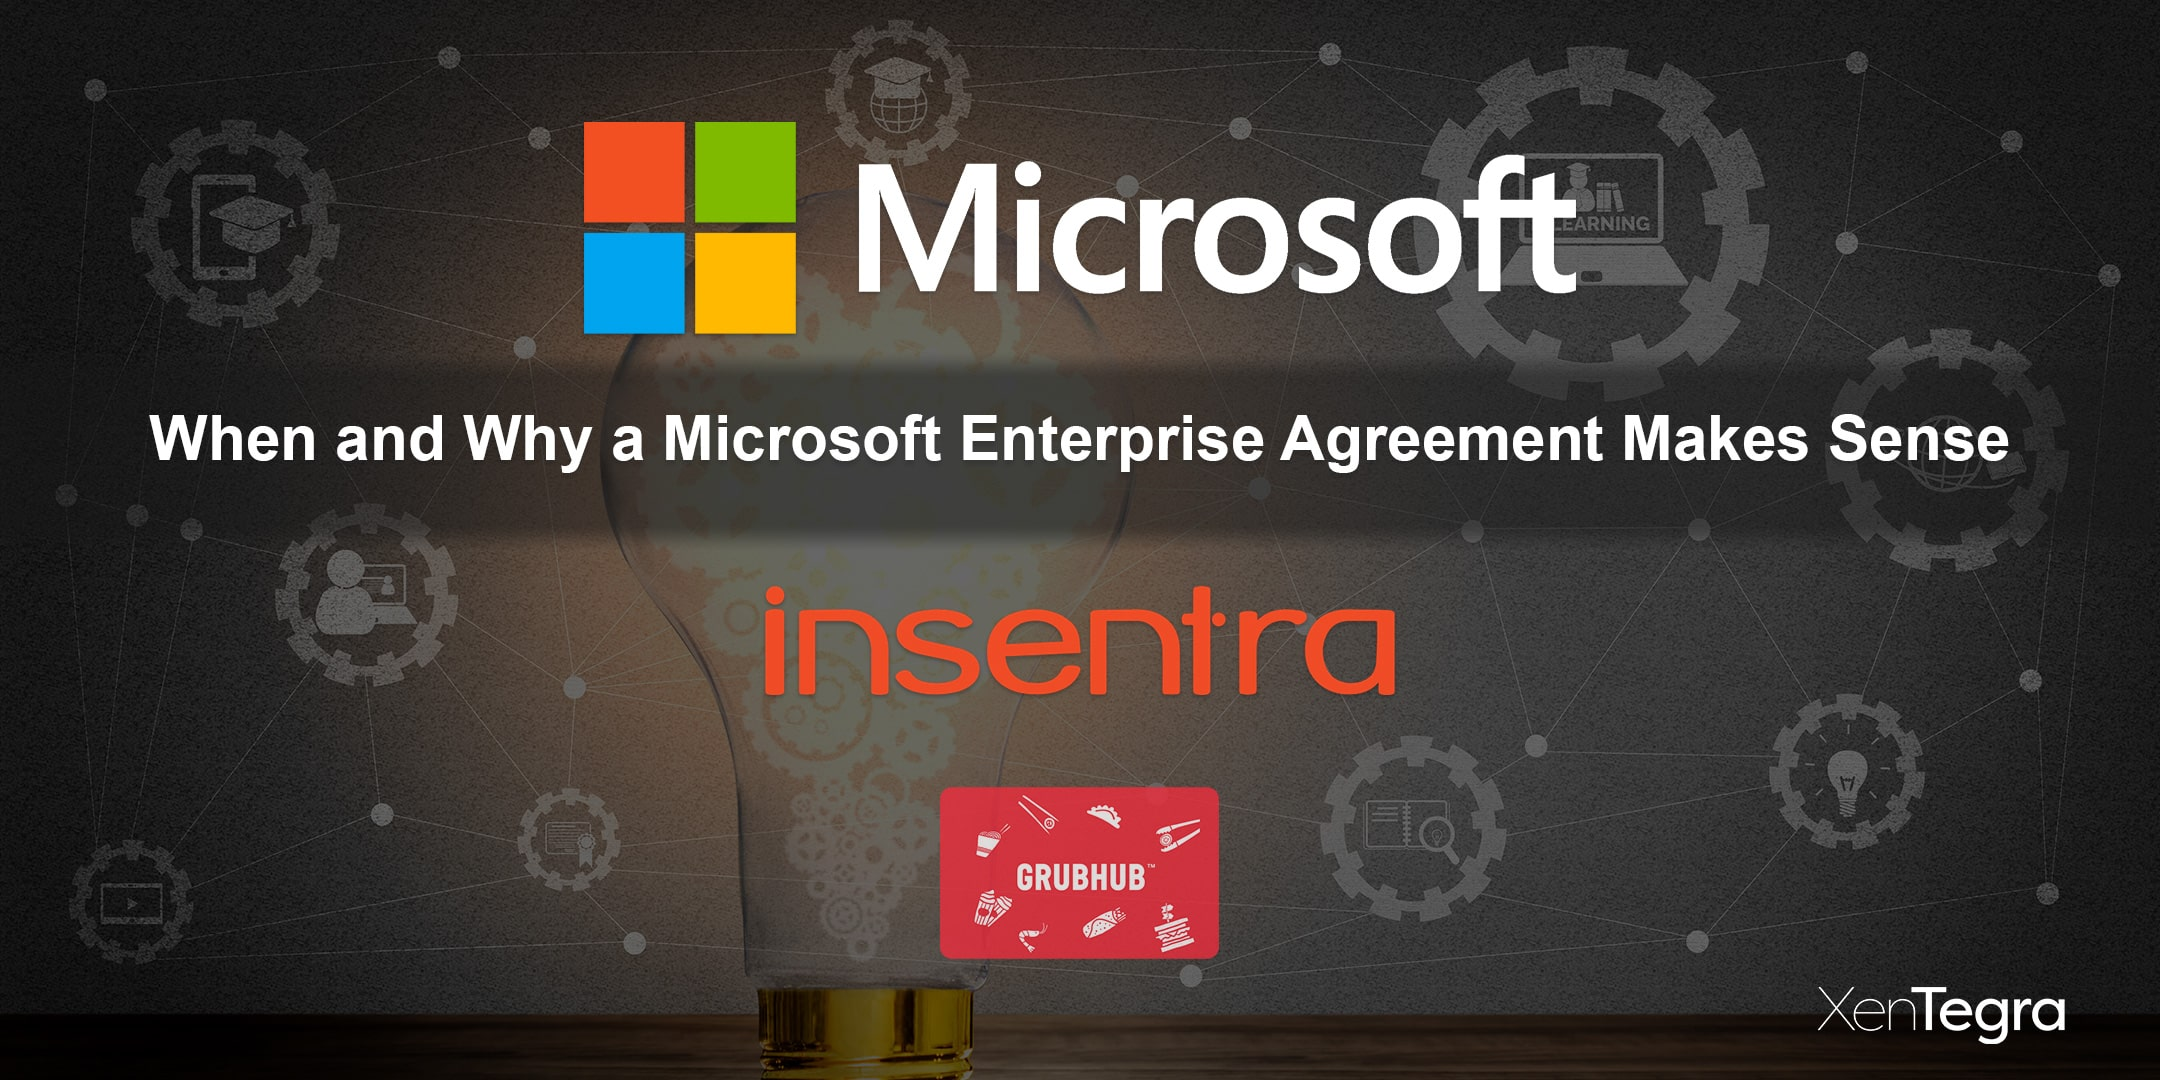 When and Why a Microsoft Enterprise Agreement Makes Sense